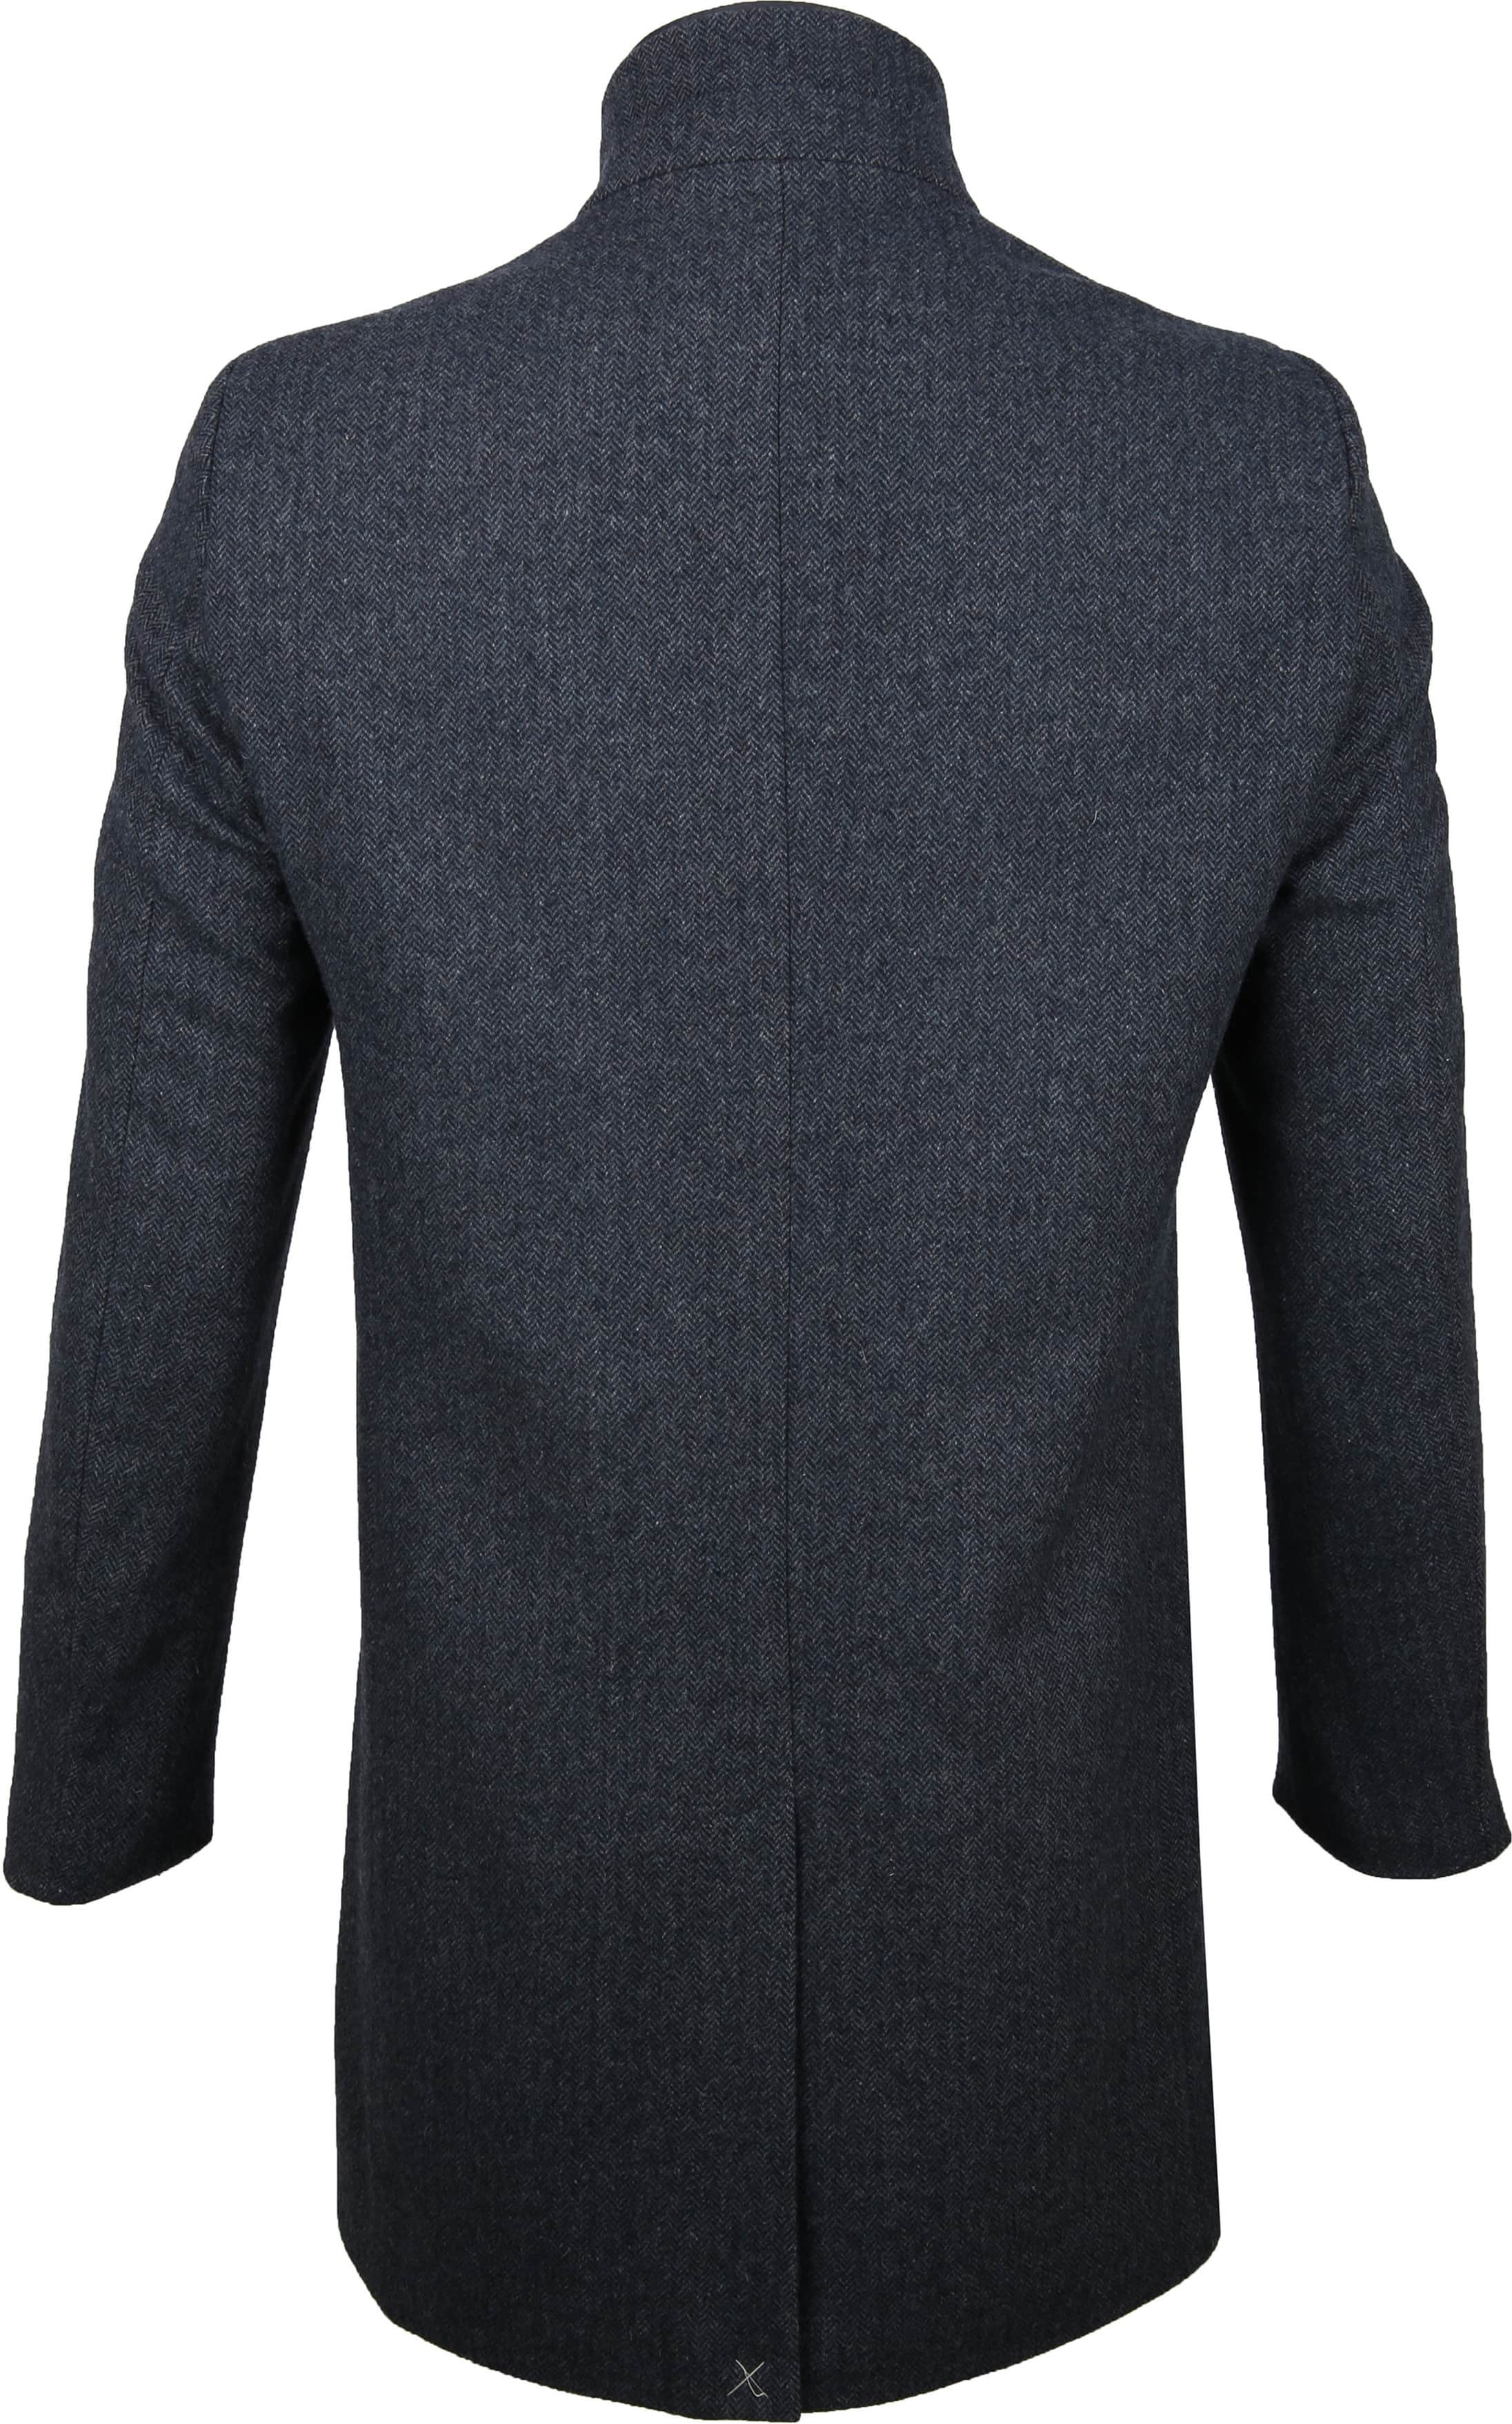 Suitable Hamburg Coat Herringbone Navy foto 5